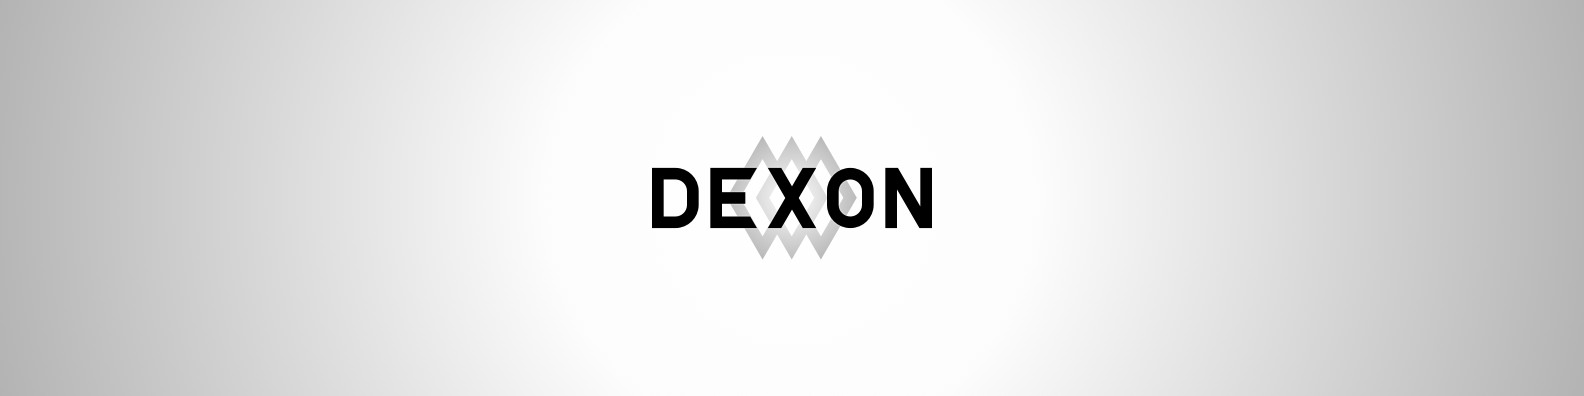 DEXON Foundation | LinkedIn